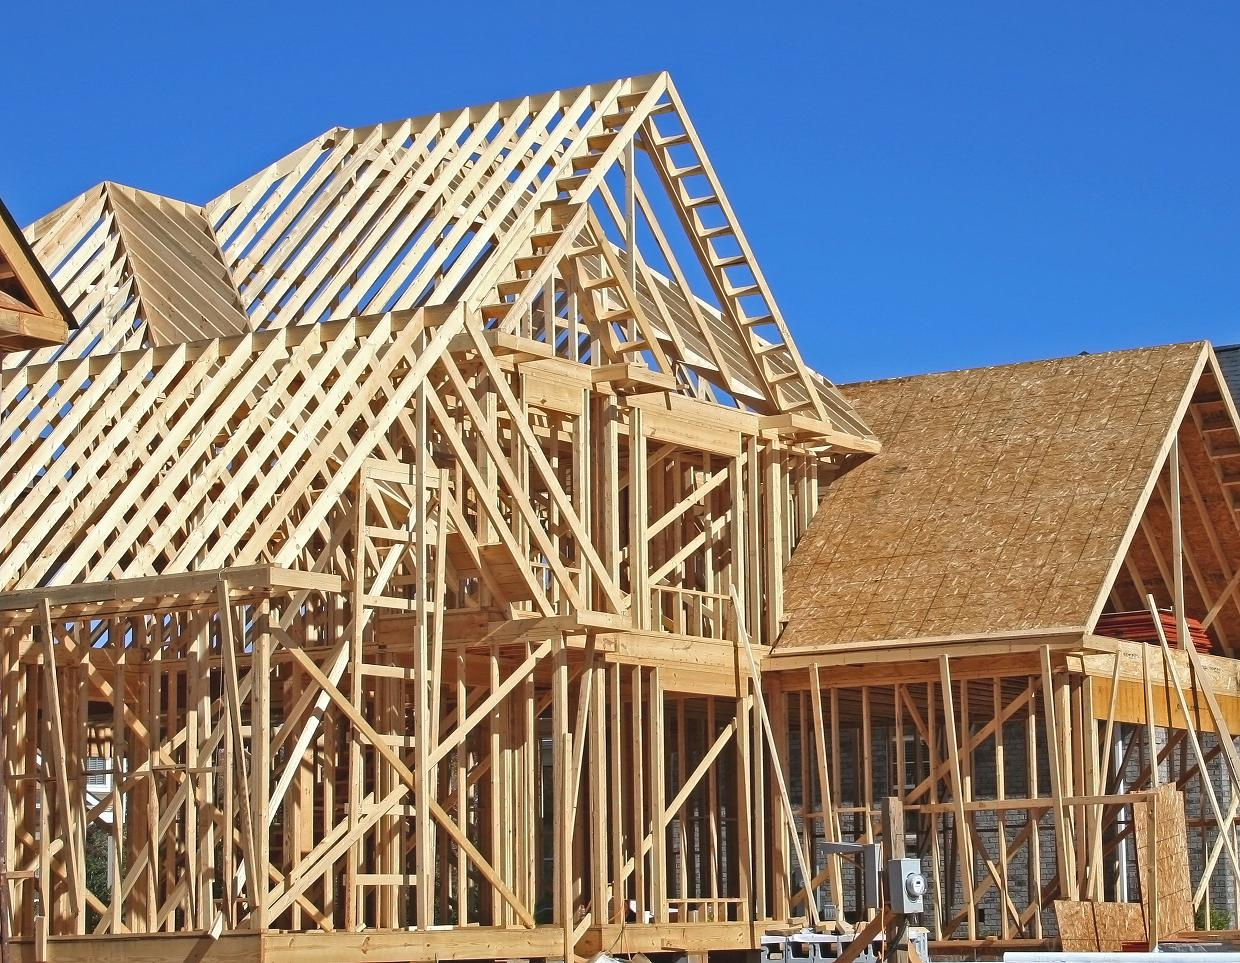 Don't Hunt for a New Home - Build Your Own Dream Home!